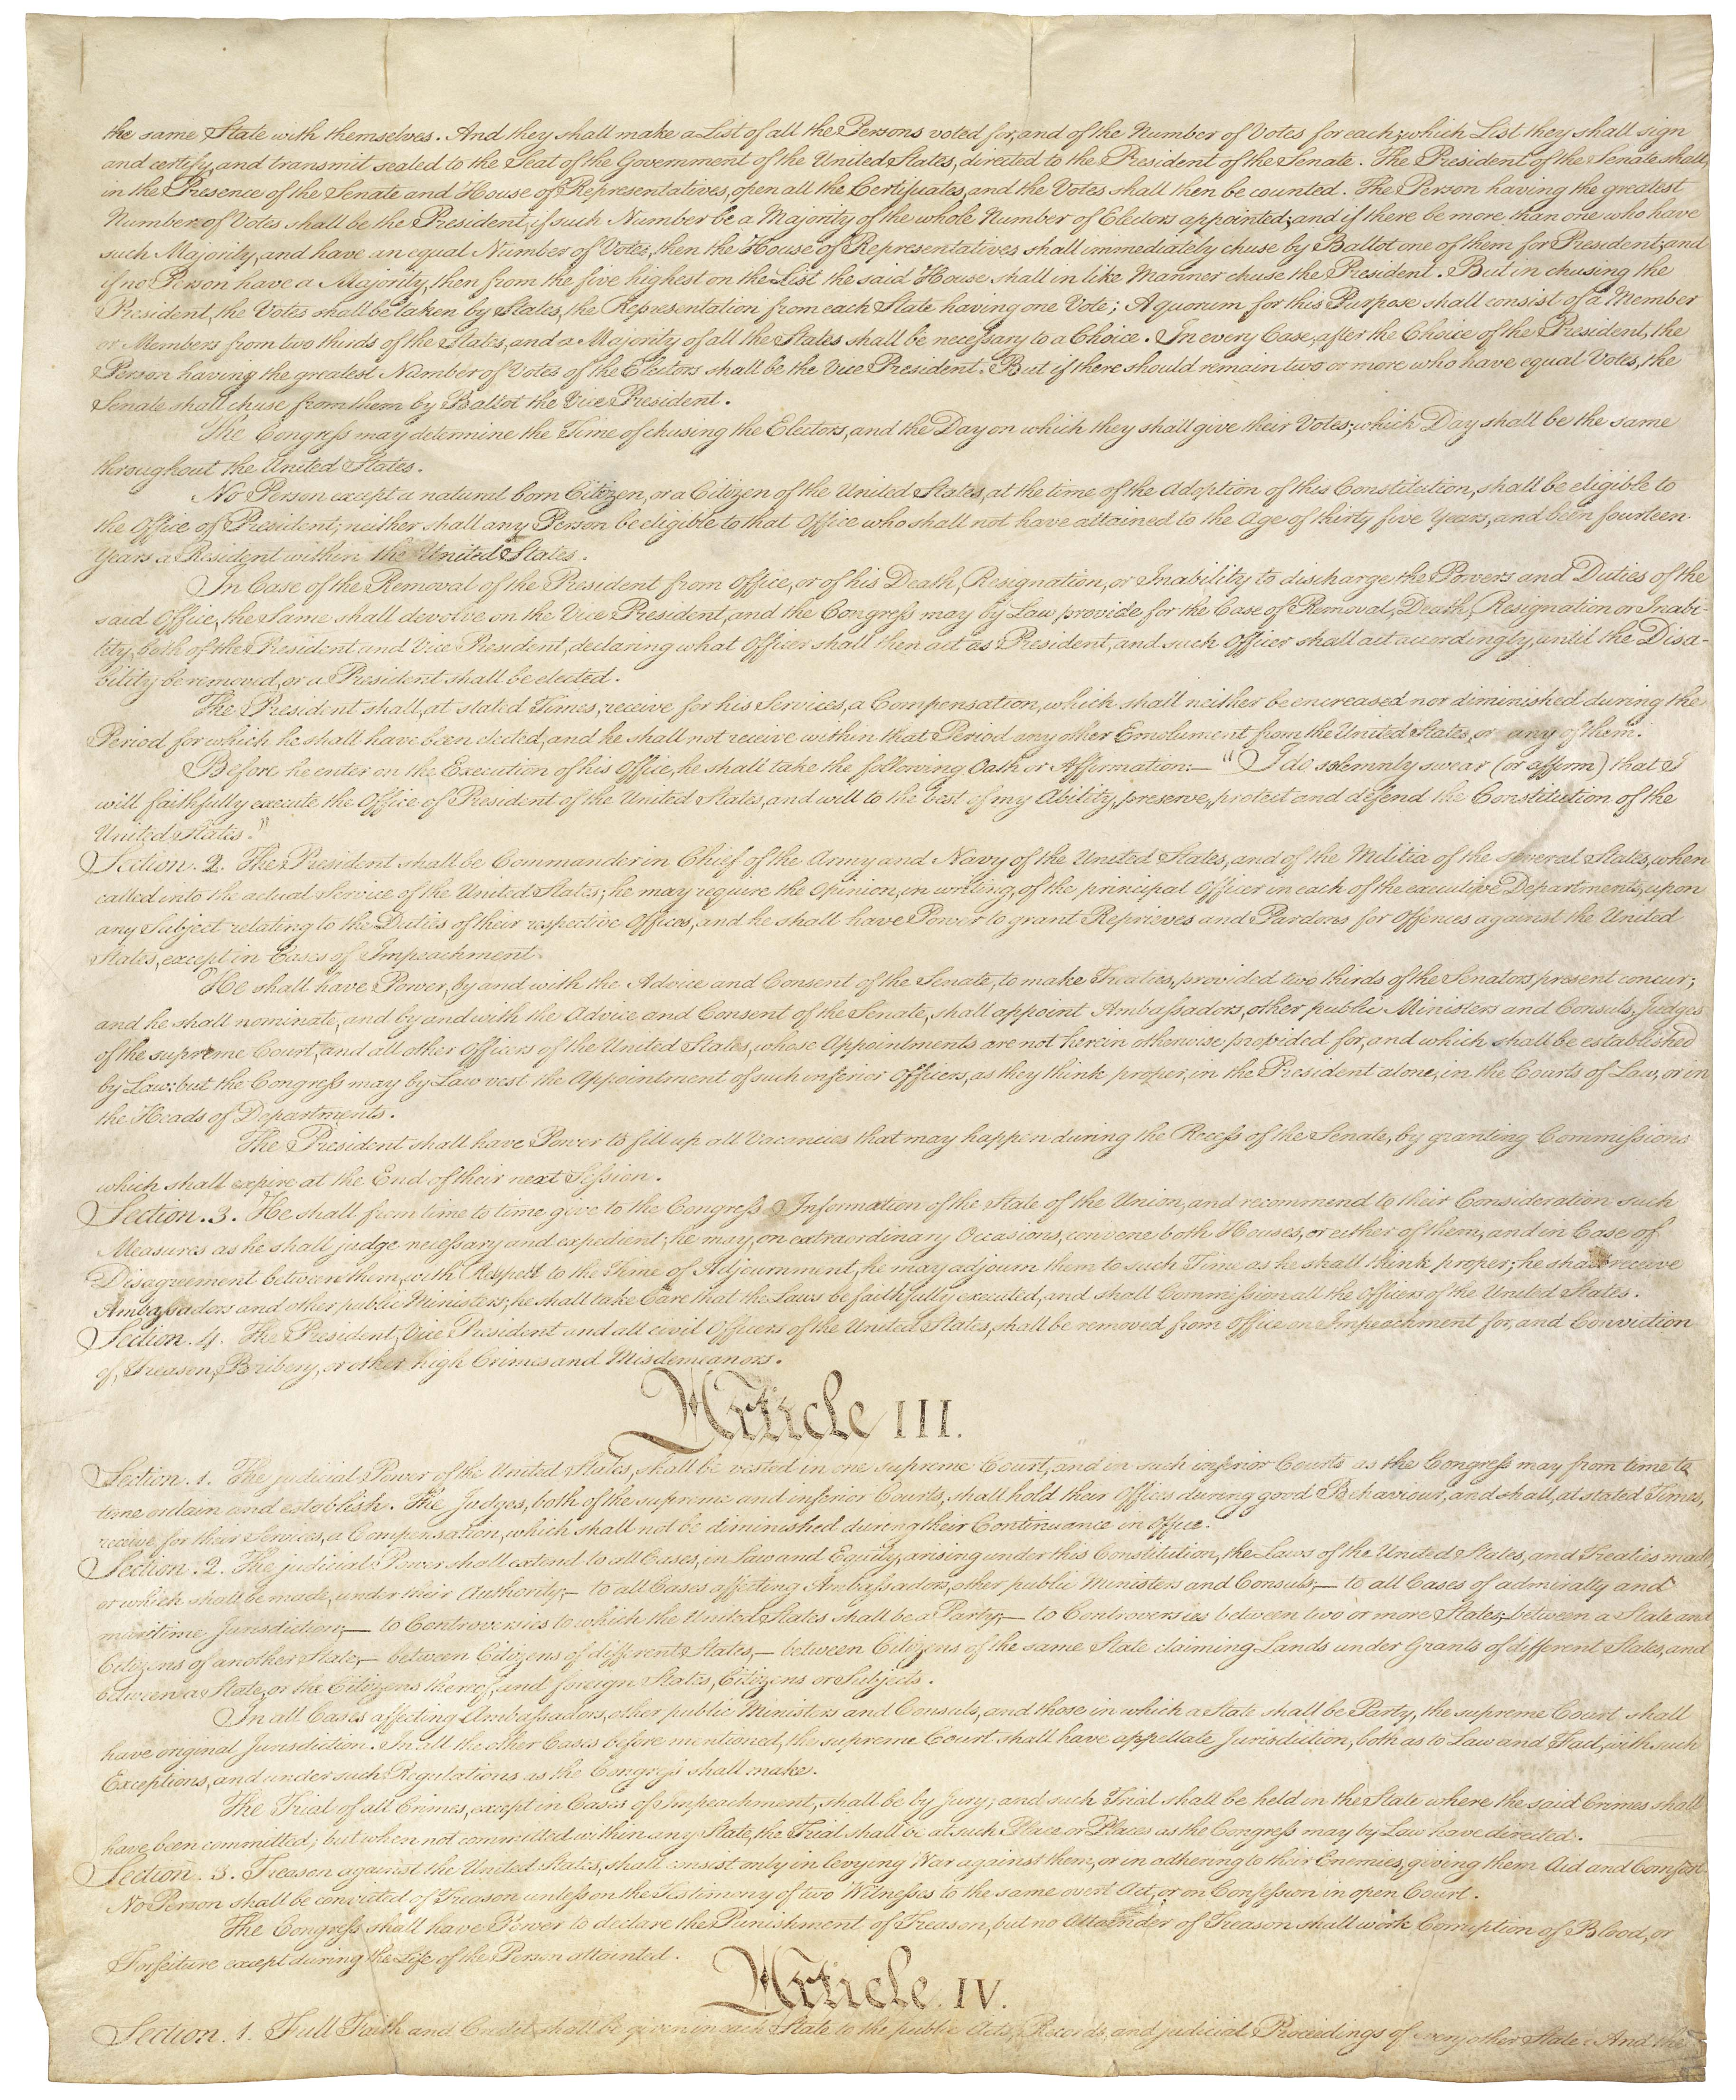 Page 3 U.S. Constitution (image of original)